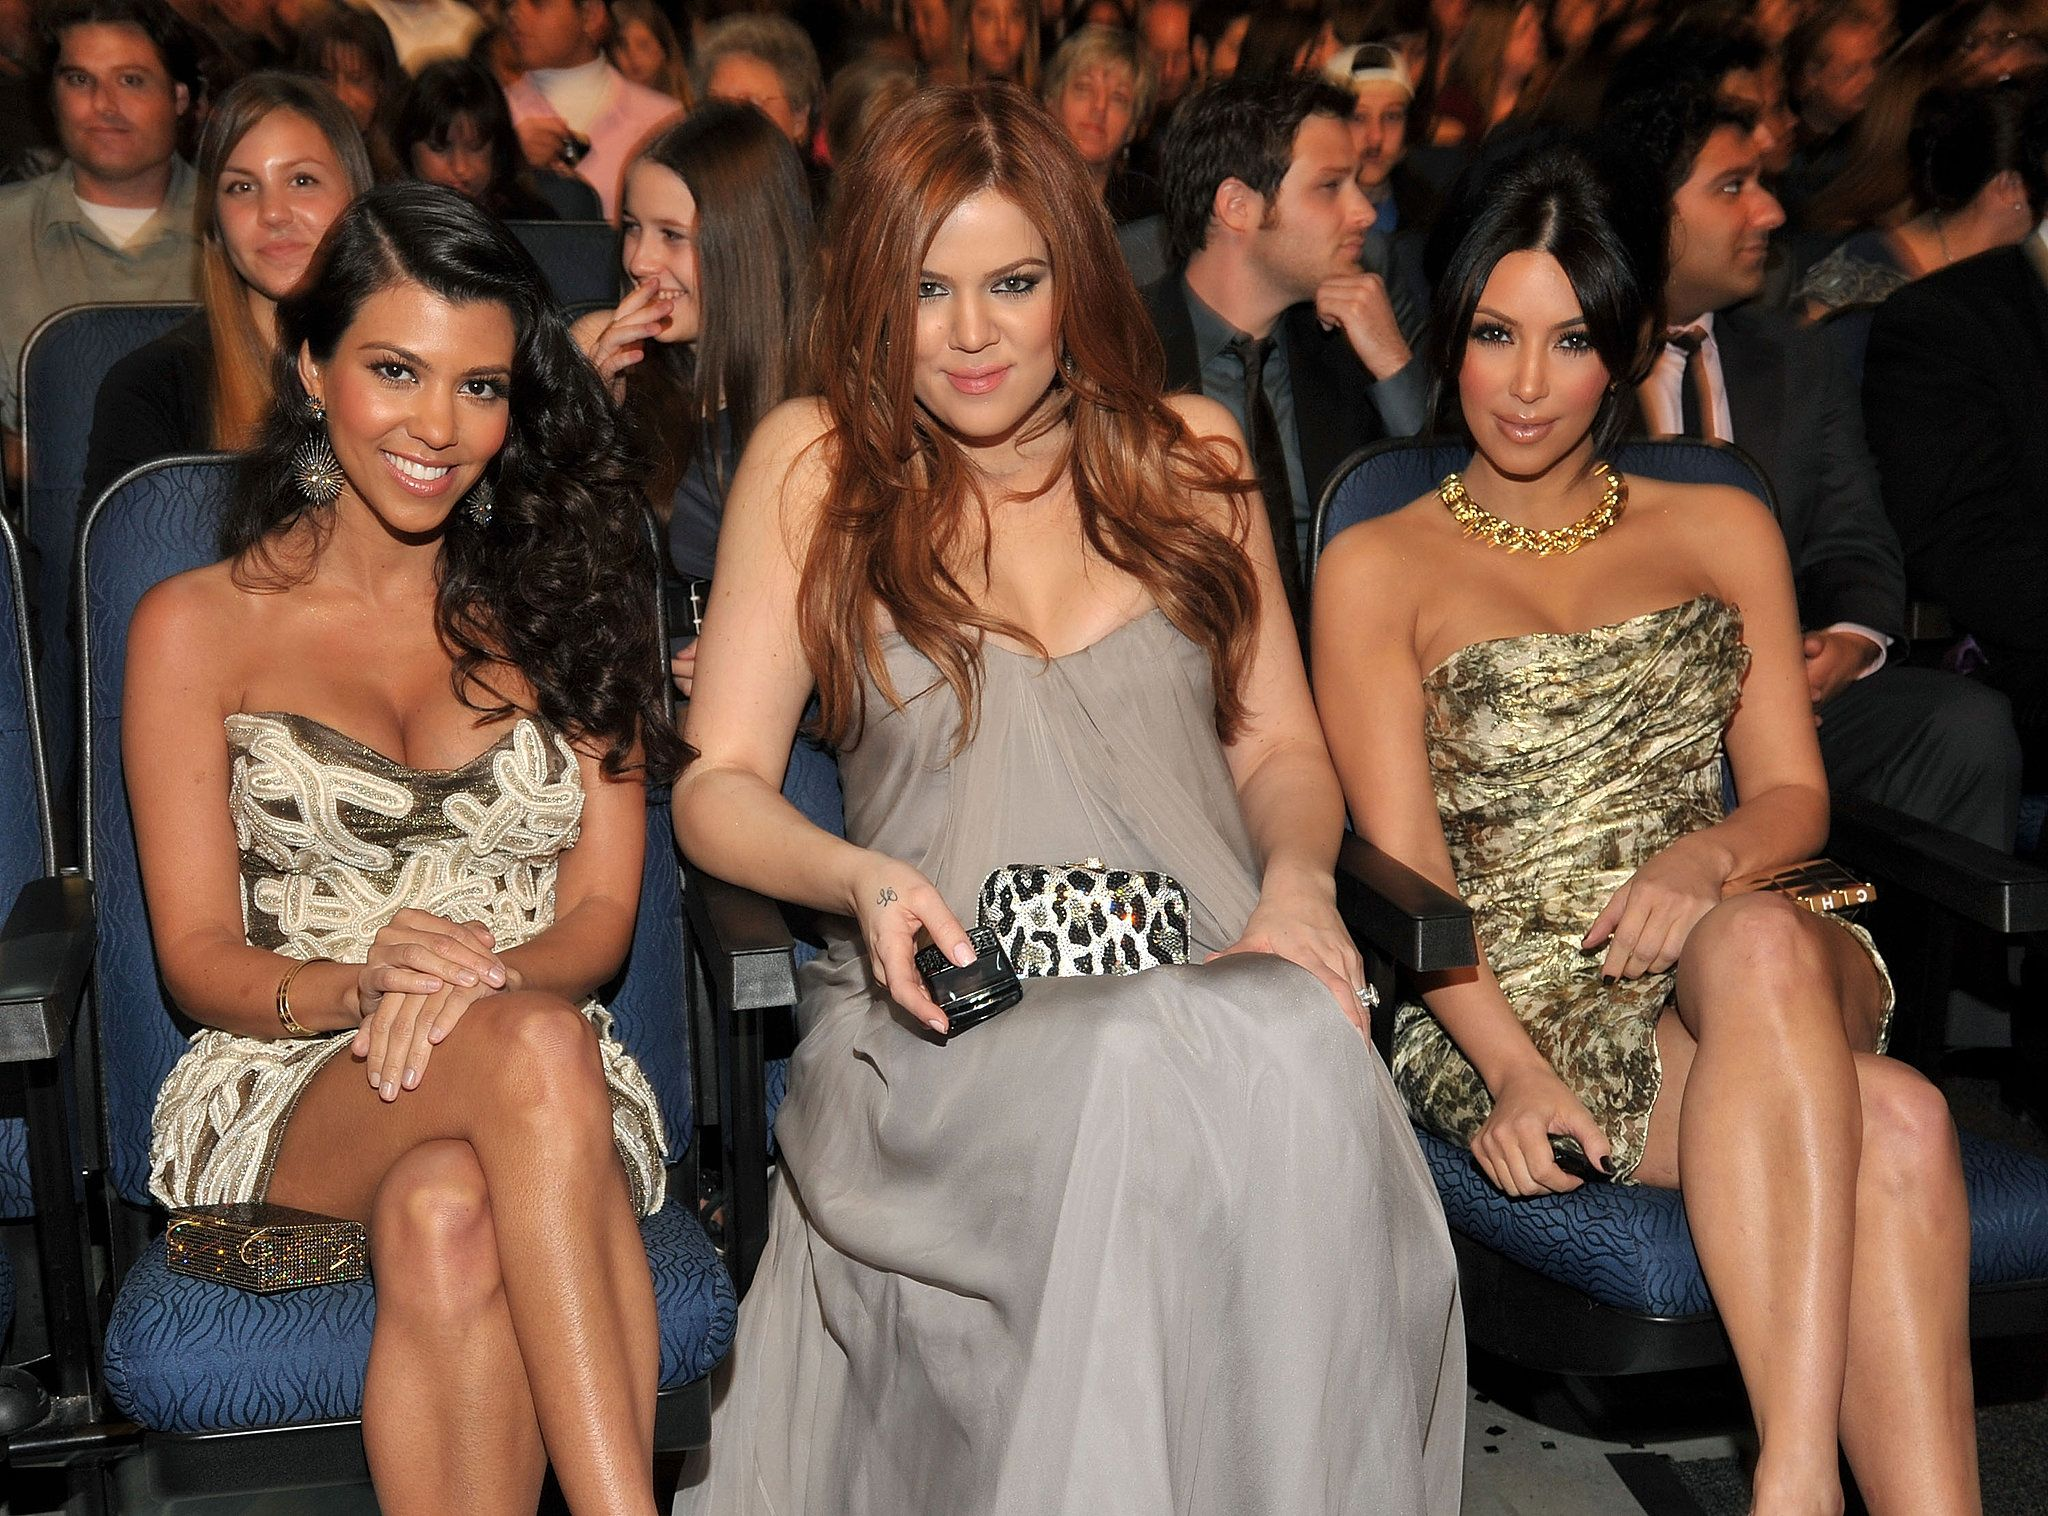 2. The Kardashians